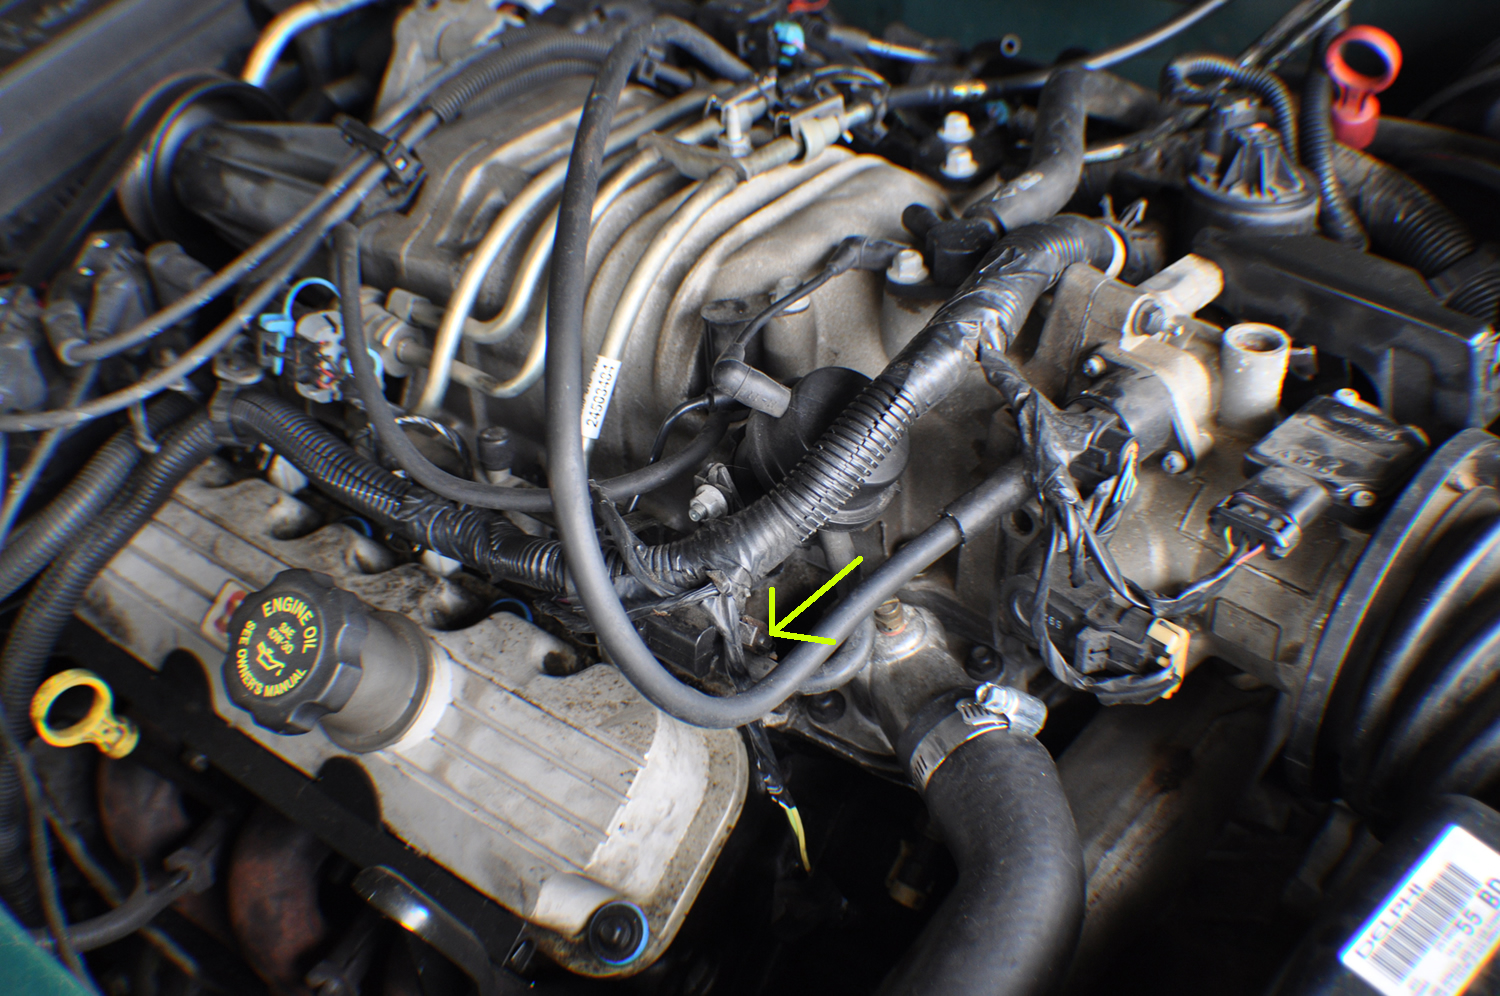 Ive Reassembled My Engine After Replacing Head Gaskets Everything Buick Vacuum Diagrams Heres 2 Pics Theres Two Metal Tabs That Must Hold A Hose Or Something On